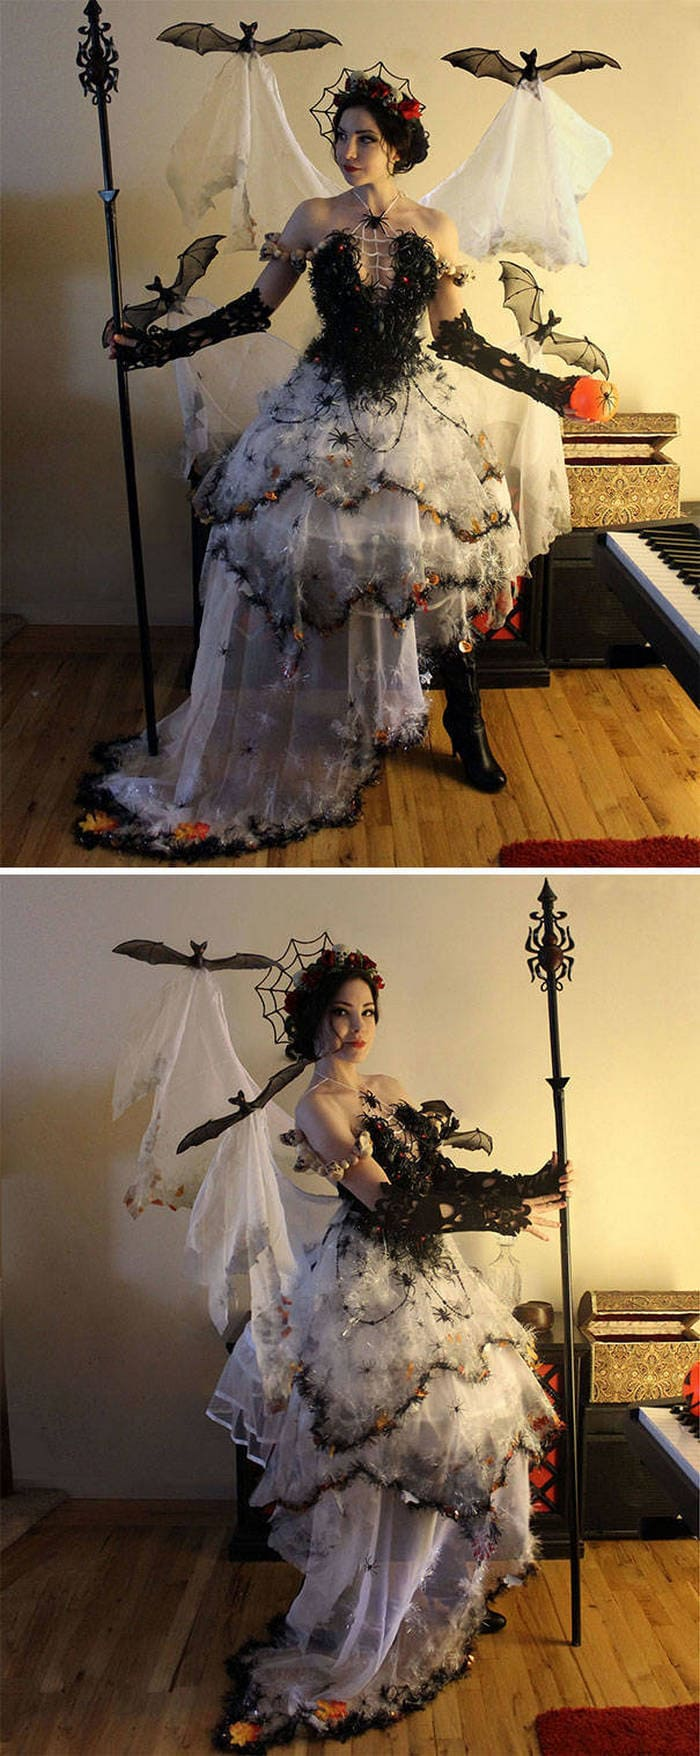 45+ Mind-blowing Halloween Costume Ideas-46